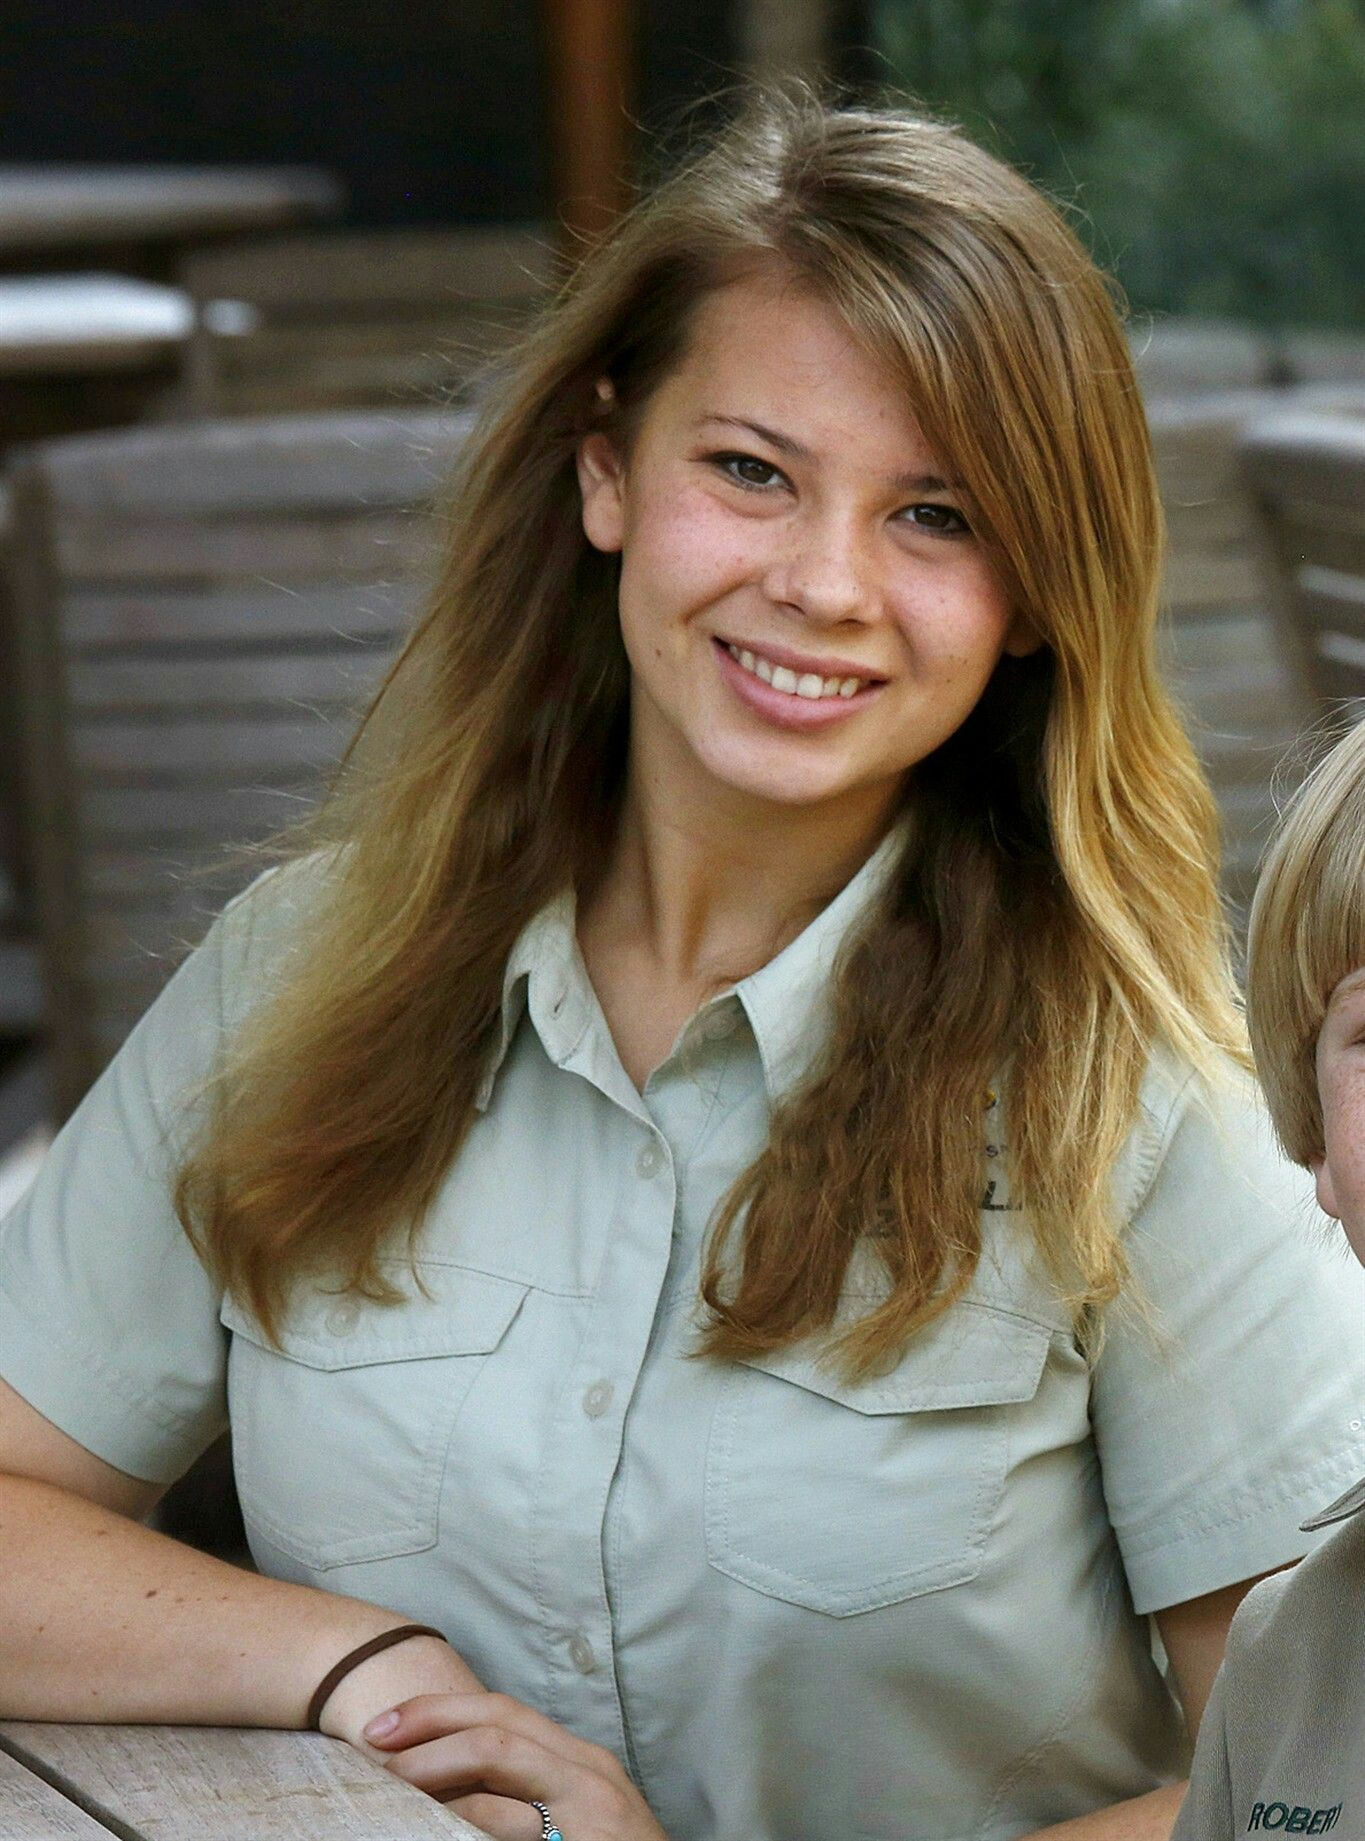 Pin by Jelle van den Biggelaar on Bindi Irwin | Pinterest